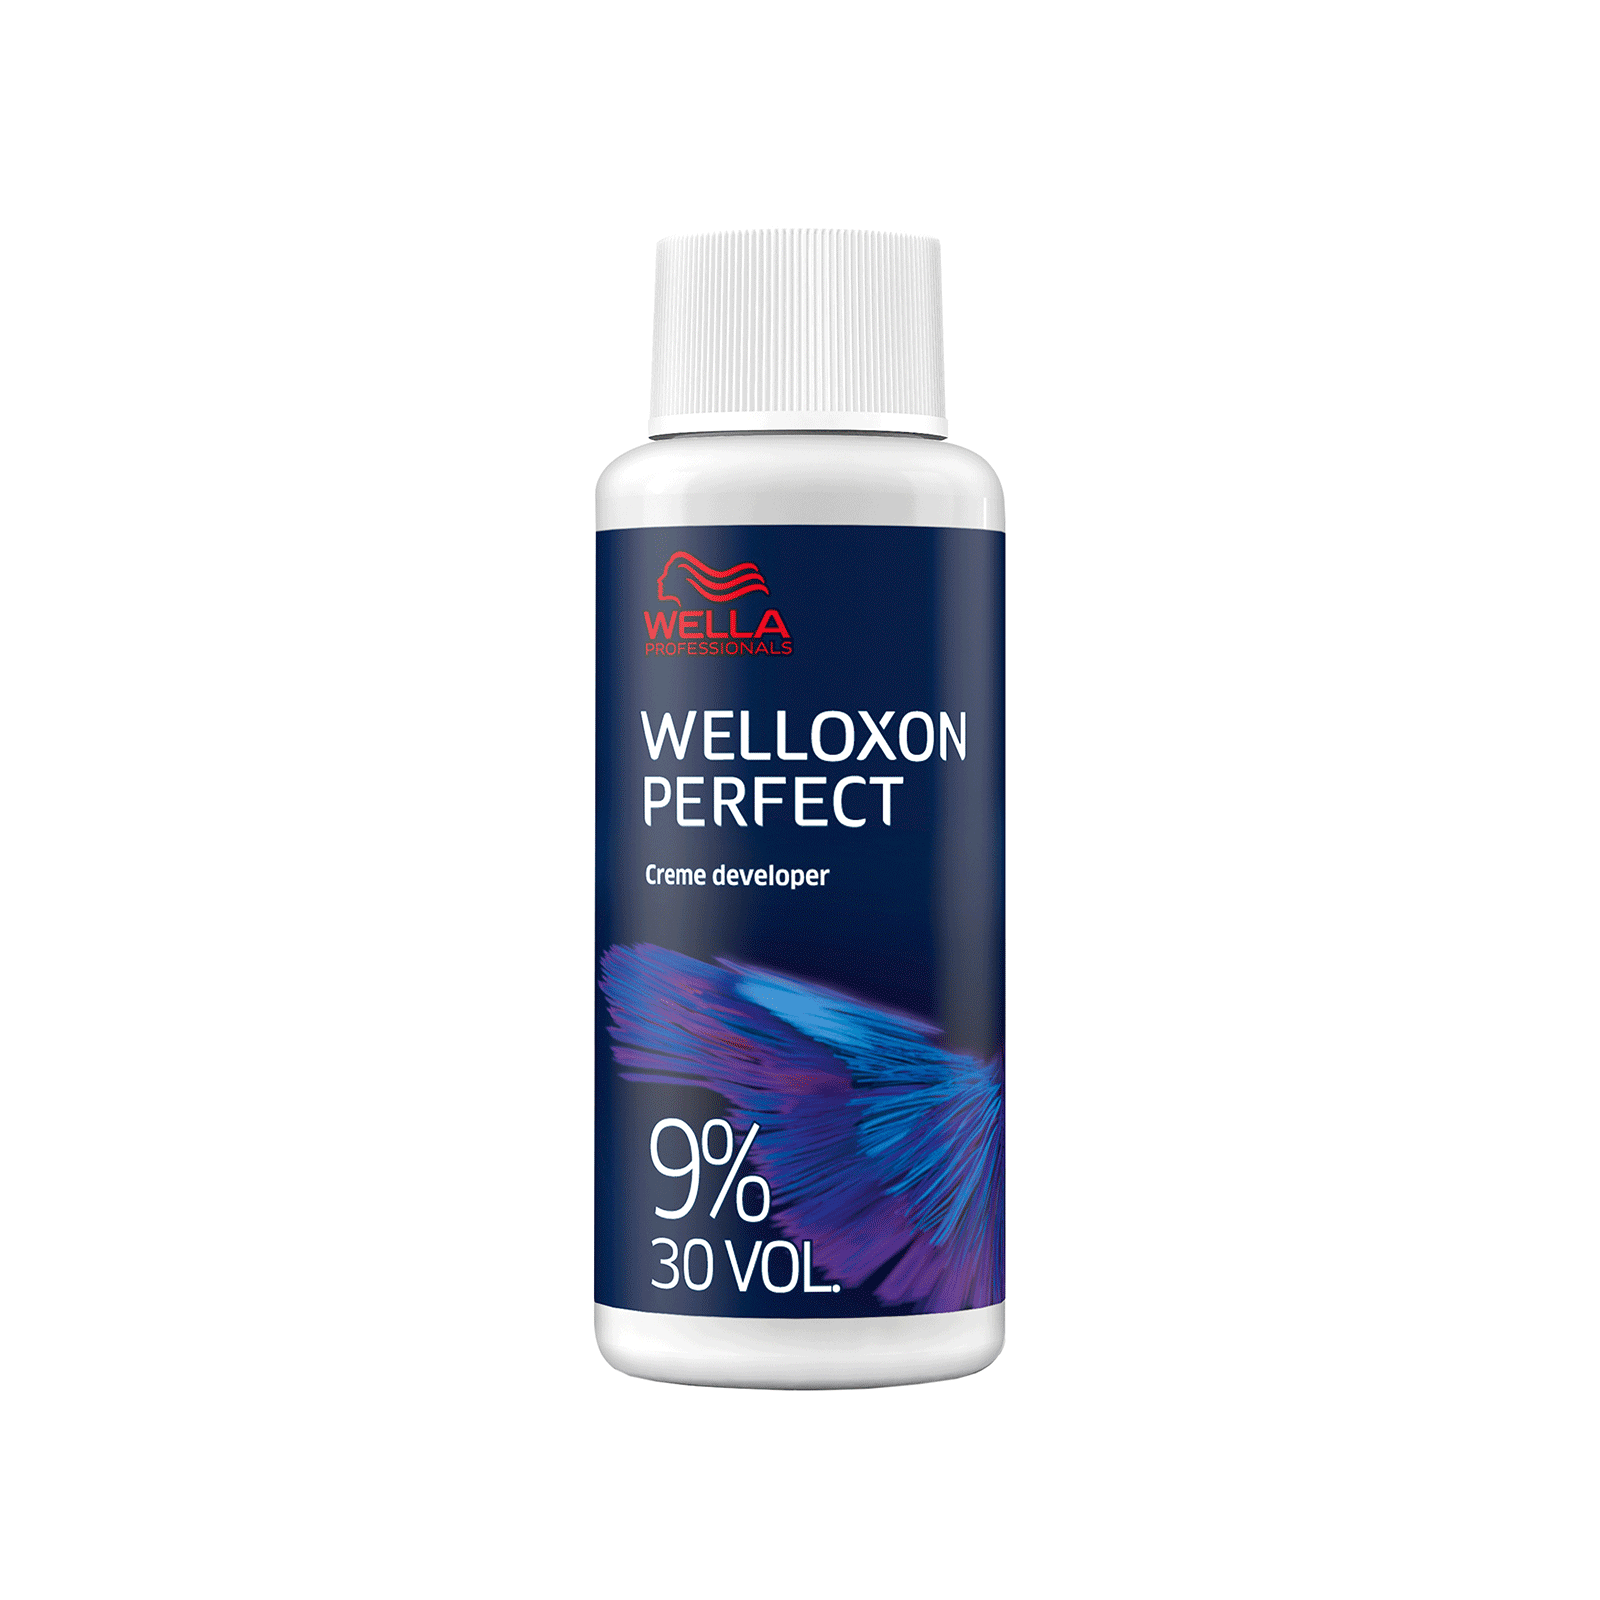 Welloxon Perfect 30 Volume 9% Developer